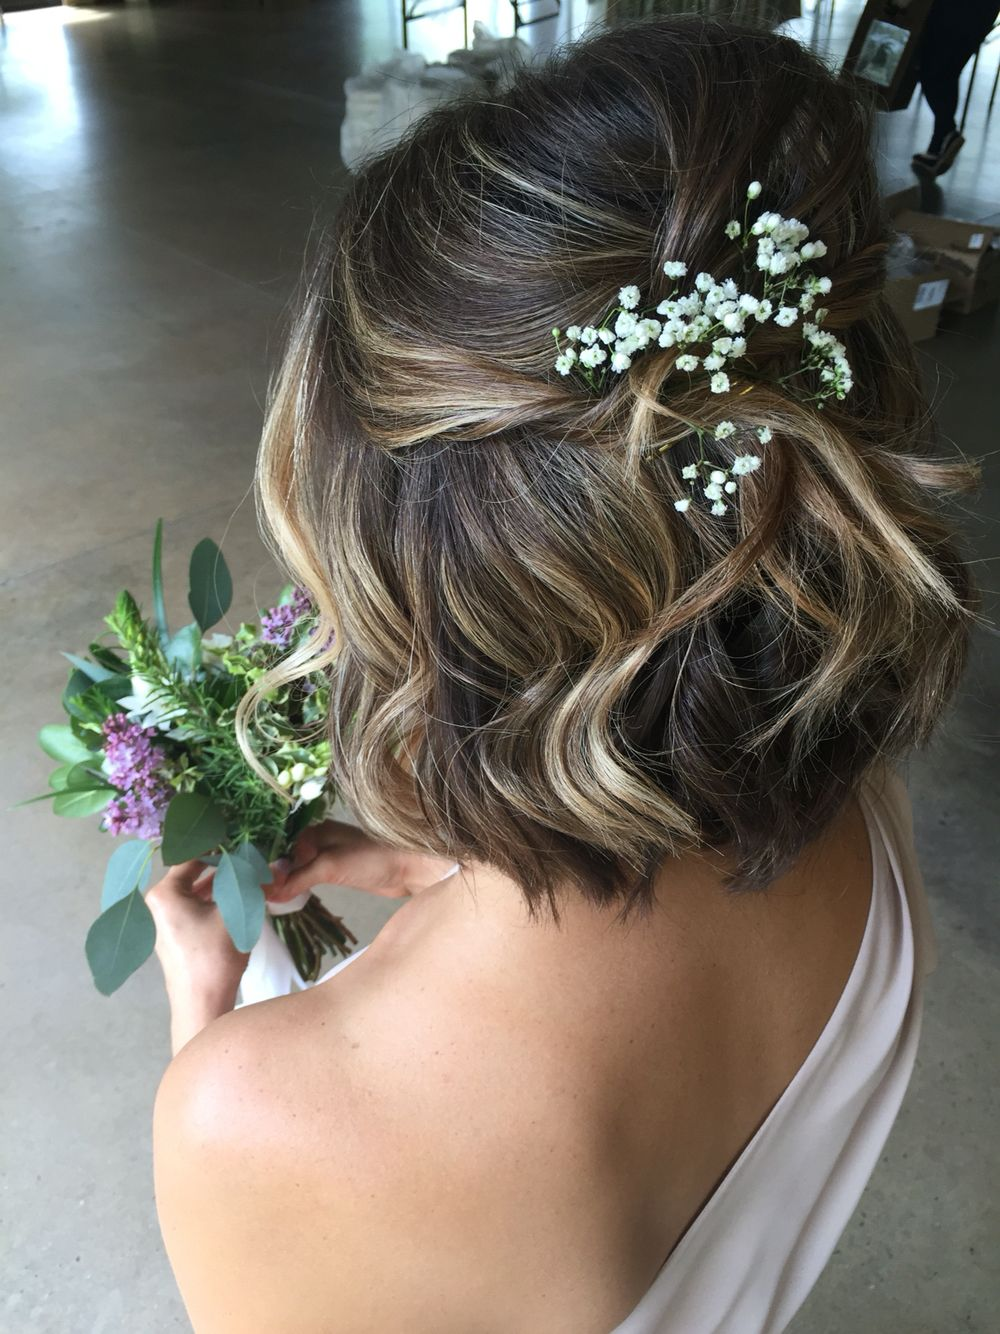 pin by lyss laurens on short hairstyles | pinterest | short hair